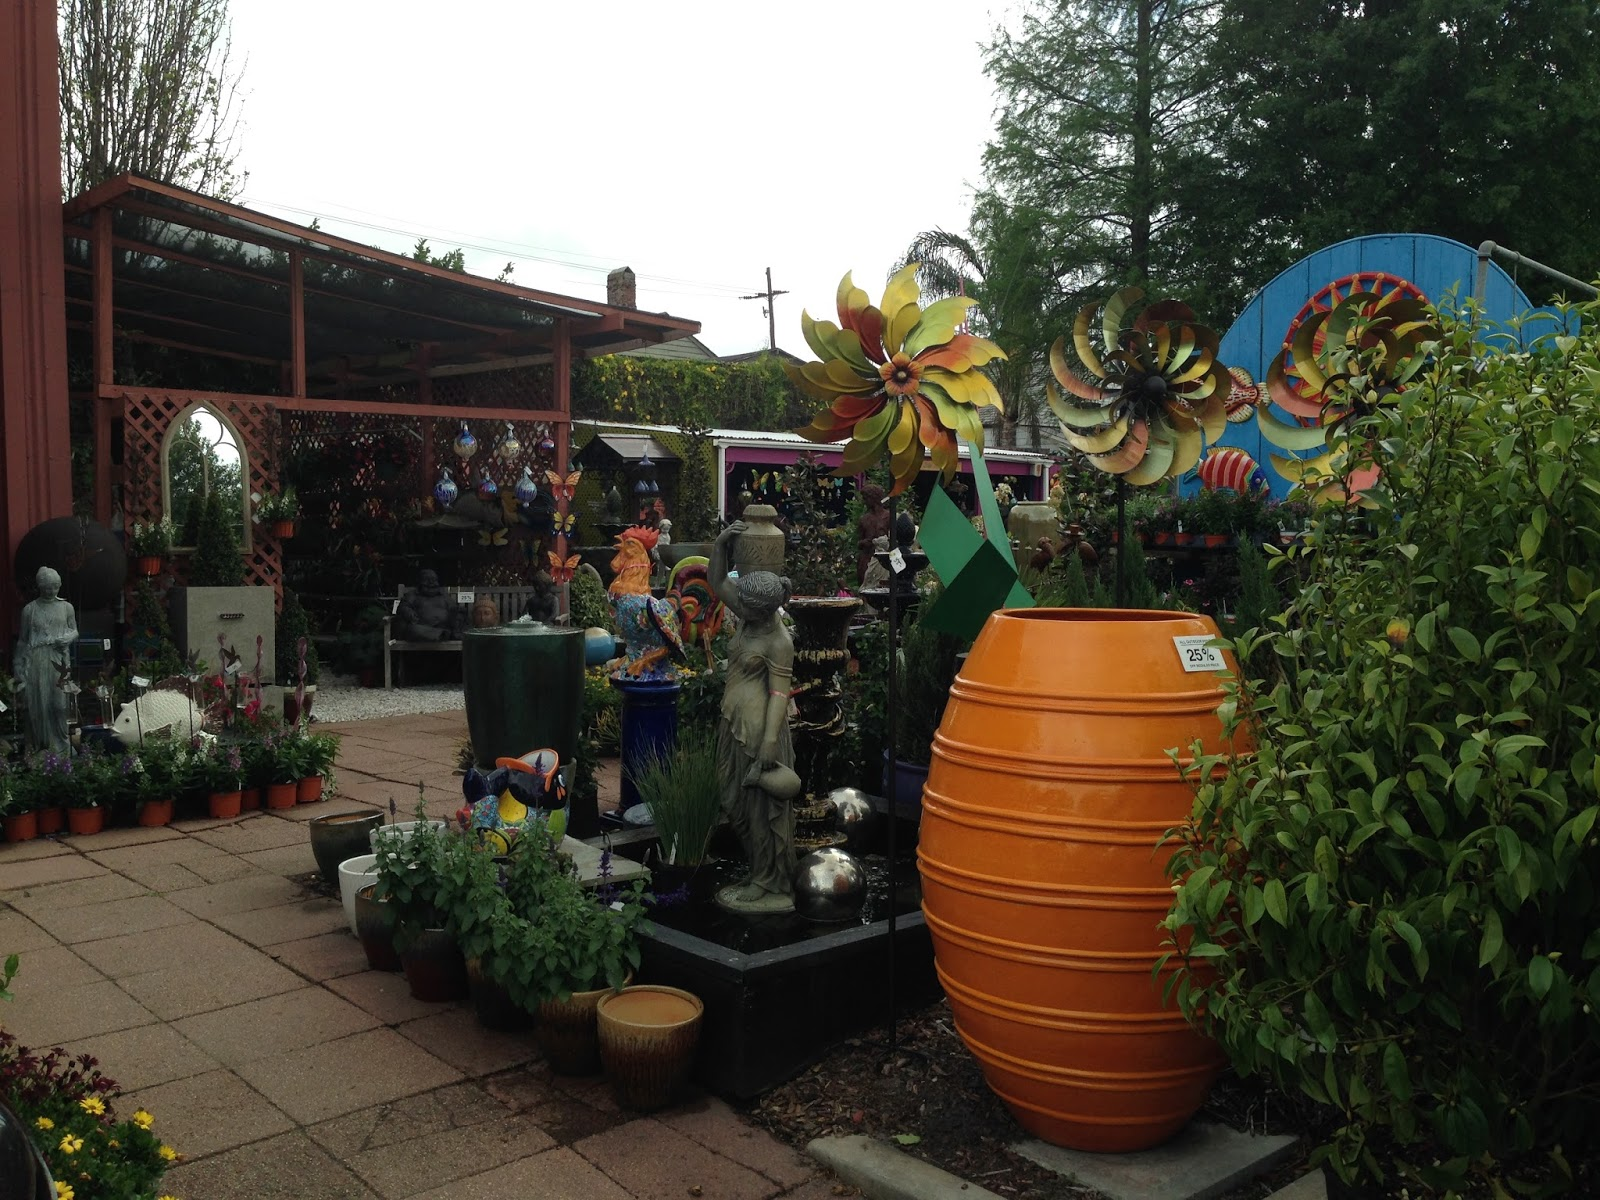 The Lents Farmer American Aquatic Gardens Gifts In New Orleans